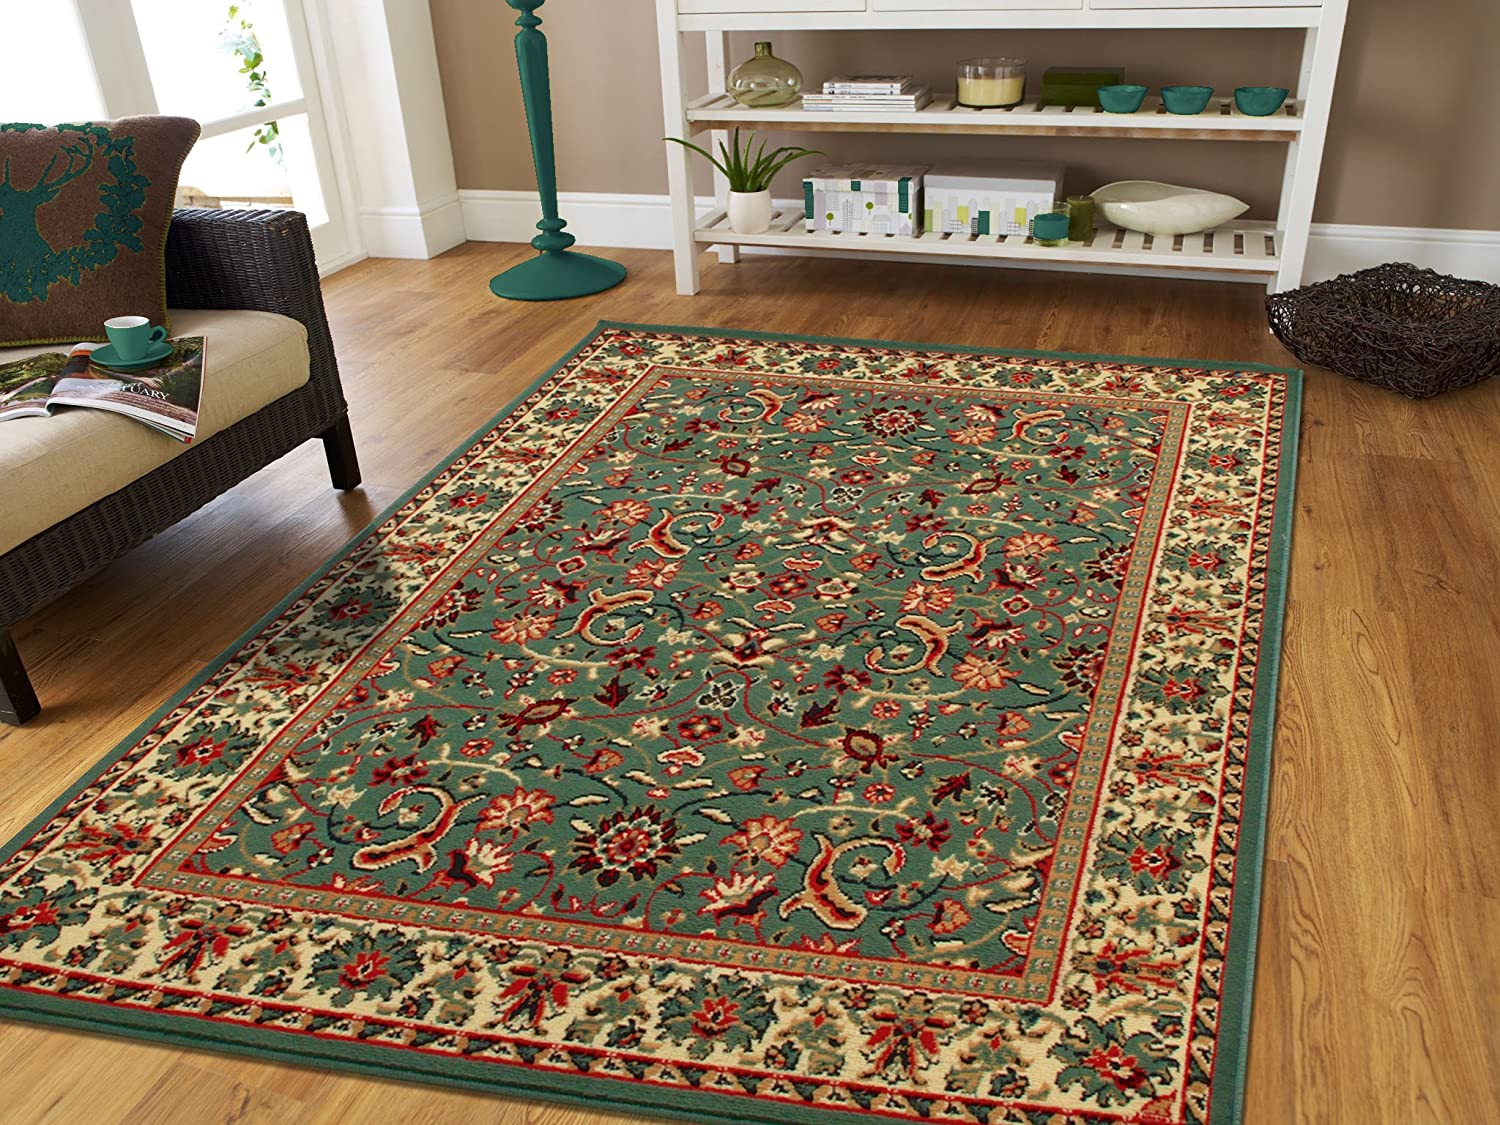 Amazon Red Persian Rugs For Living Room 5x8 Bedroom Office Rug Reds Green Cream Black Area 5x7 Clearance Under 50 Kitchen